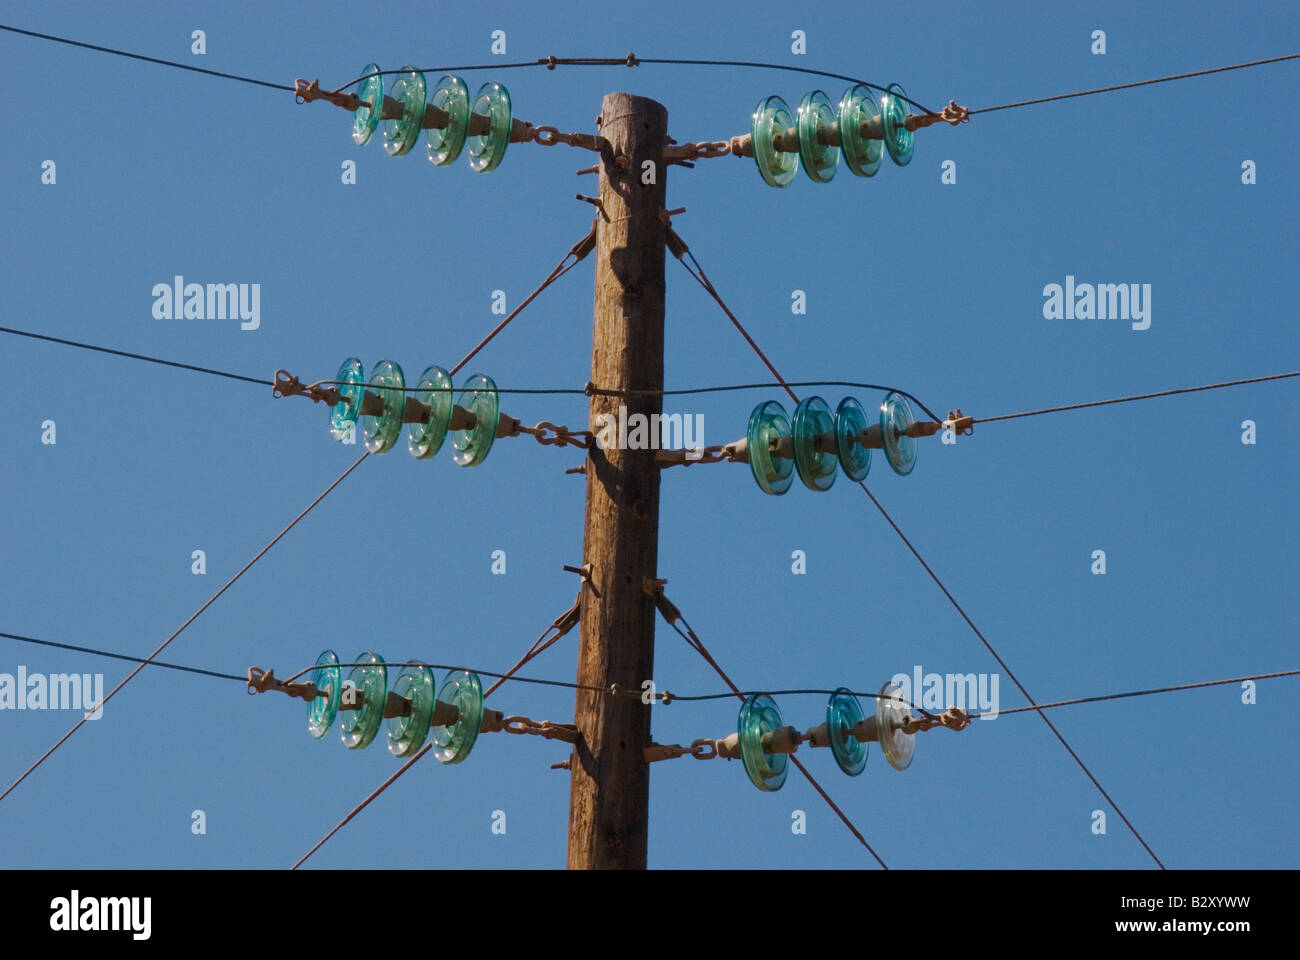 Glass Insulator Stock Photos & Glass Insulator Stock Images - Alamy